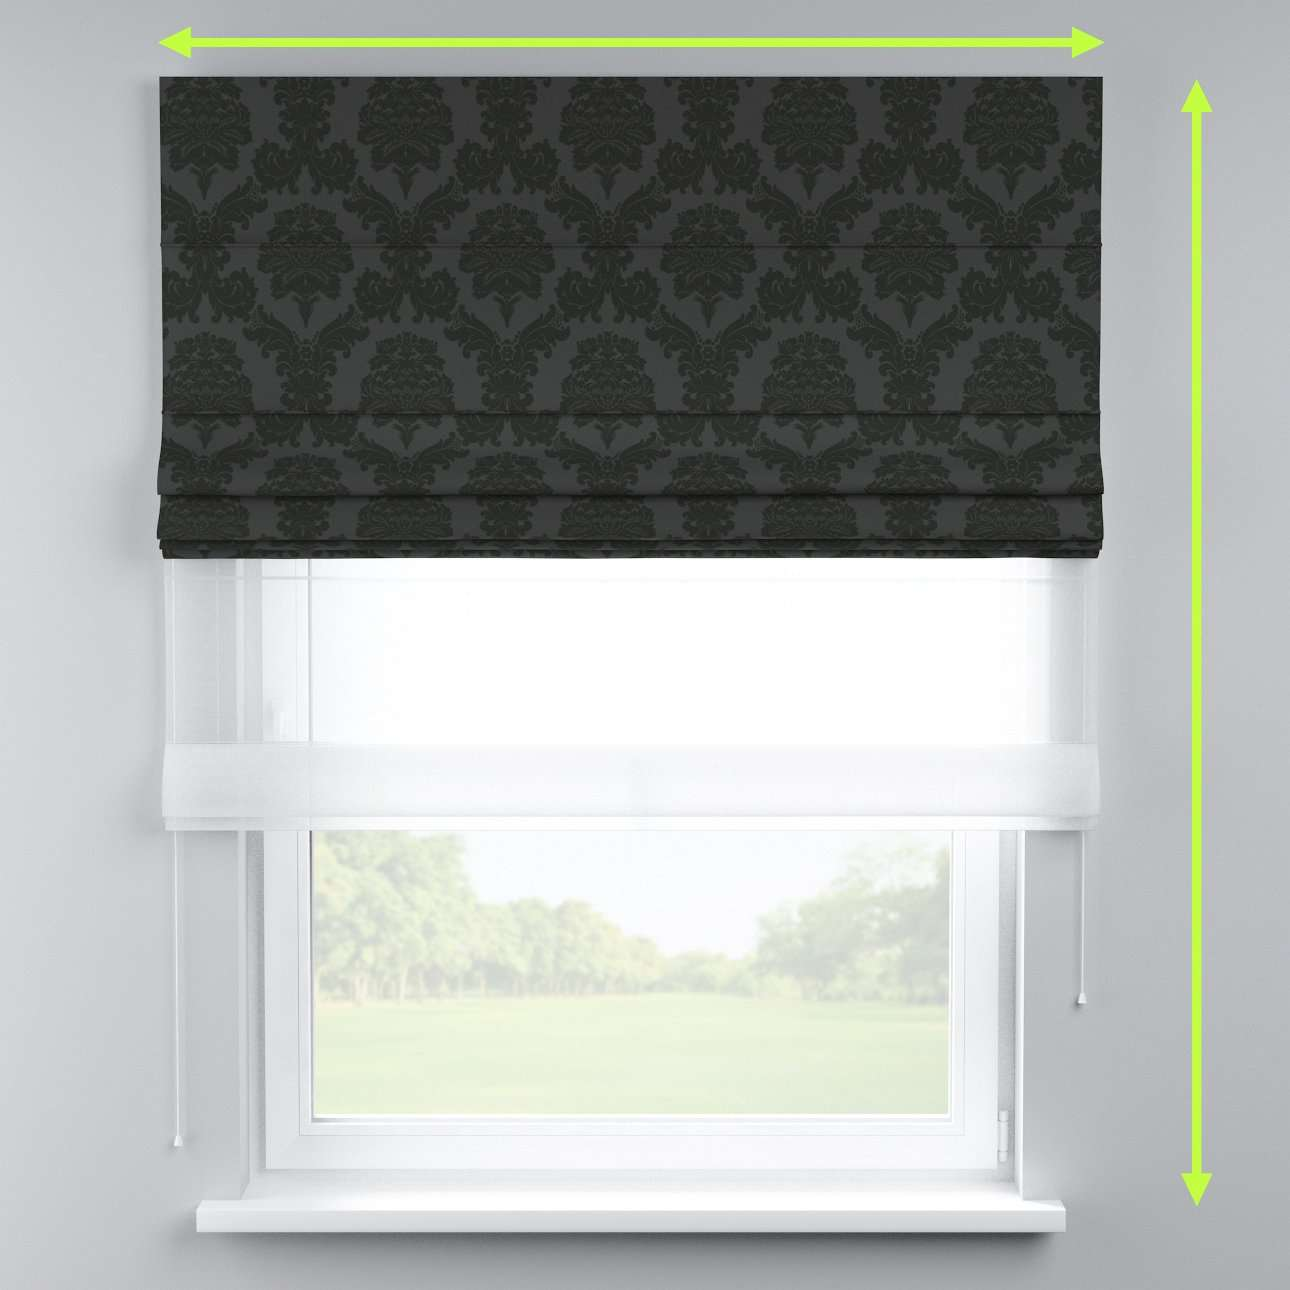 Voile and fabric roman blind (DUO II) in collection Damasco, fabric: 613-32